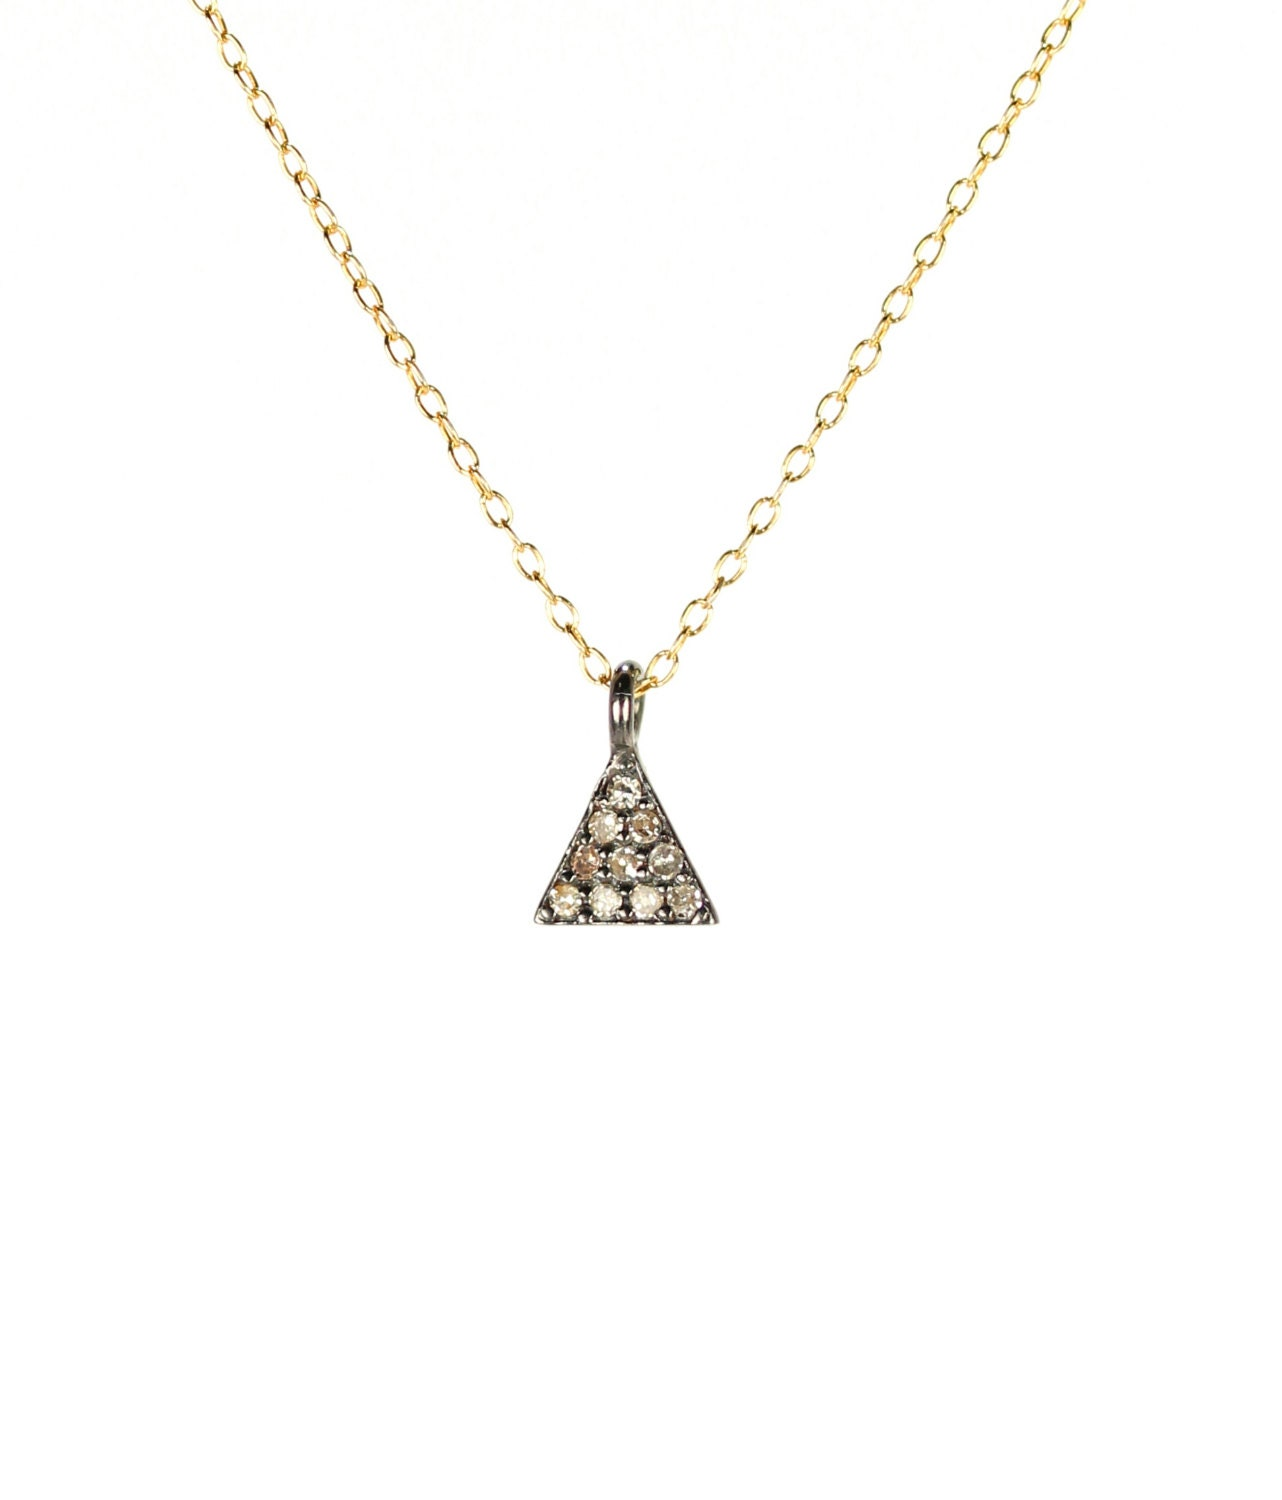 Triangle necklace pave diamond necklace diamond triangle triangle necklace pave diamond necklace diamond triangle diamond pendant a tiny diamond triangle charm on 14k gold filled chain mozeypictures Image collections